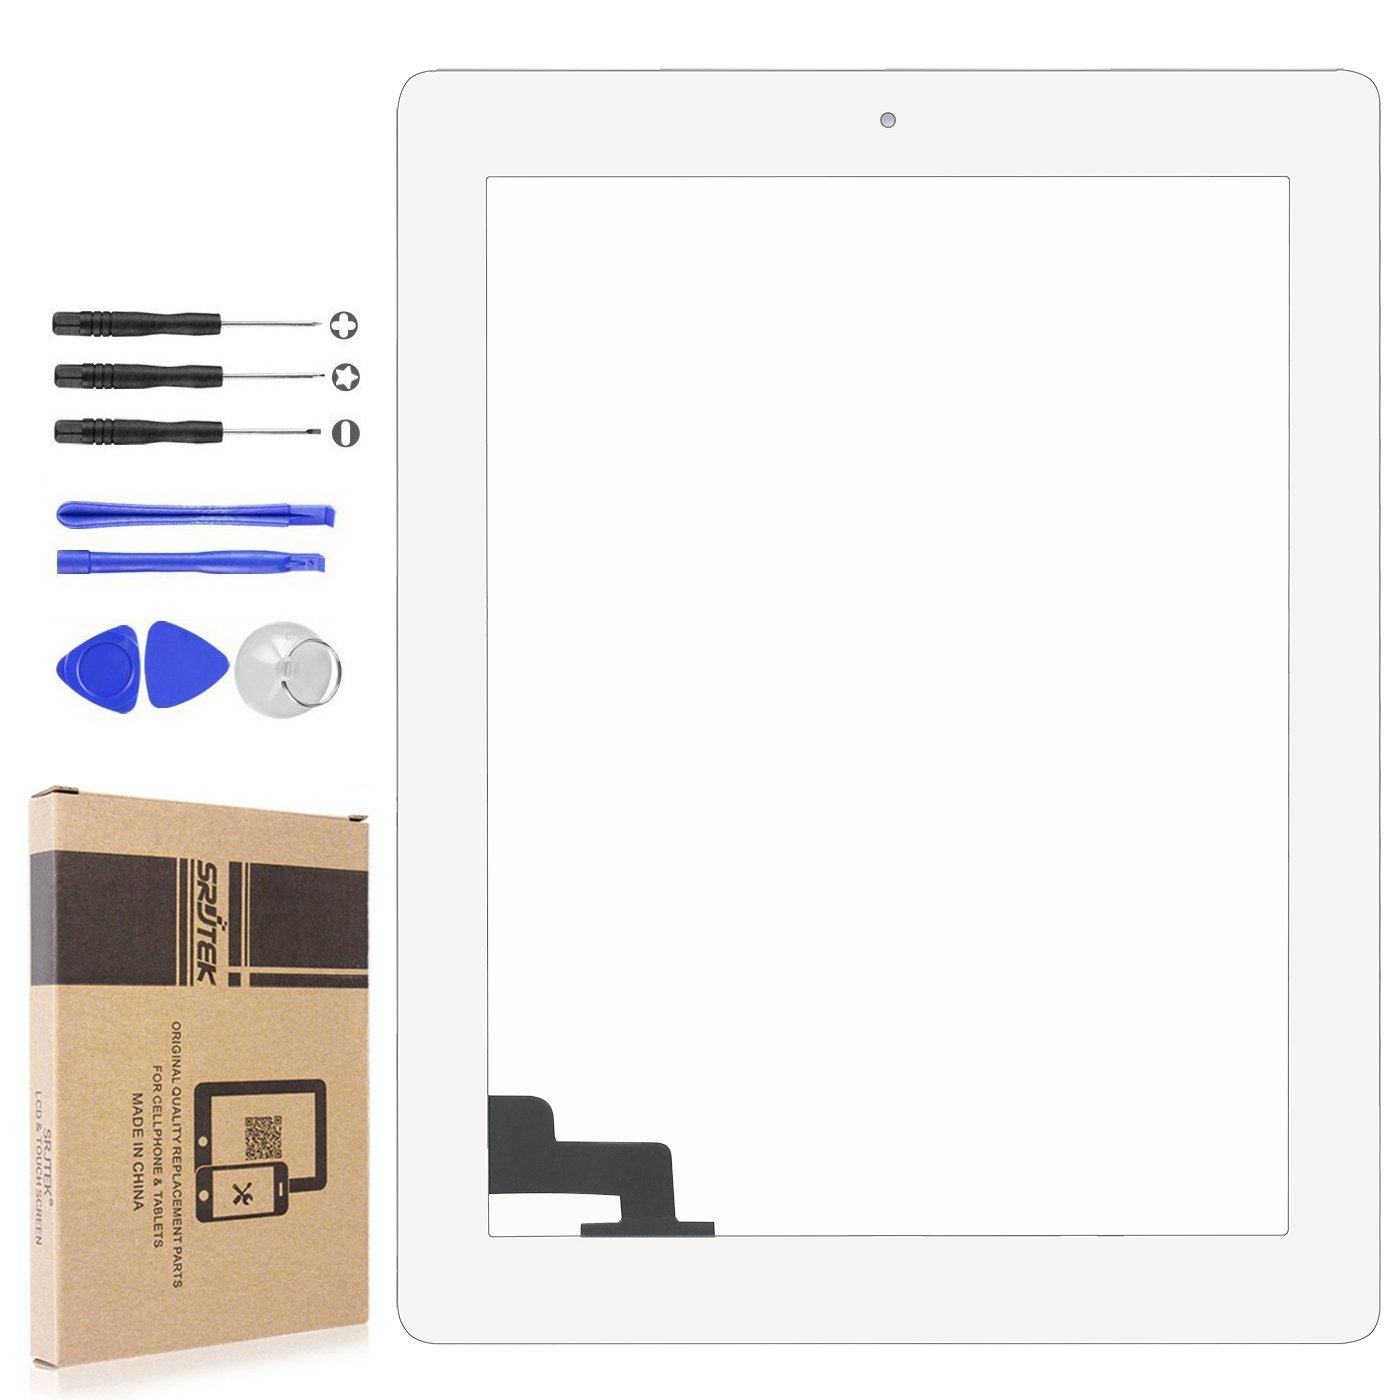 srjtek Touch Screen Digitizer for IPad 2 A1397 A1395 A1396,Replacement Parts Home Button + Cameral Holder + Pre-installed Adhesive + Middle Frame Bezel,Professional Tools Include(White)